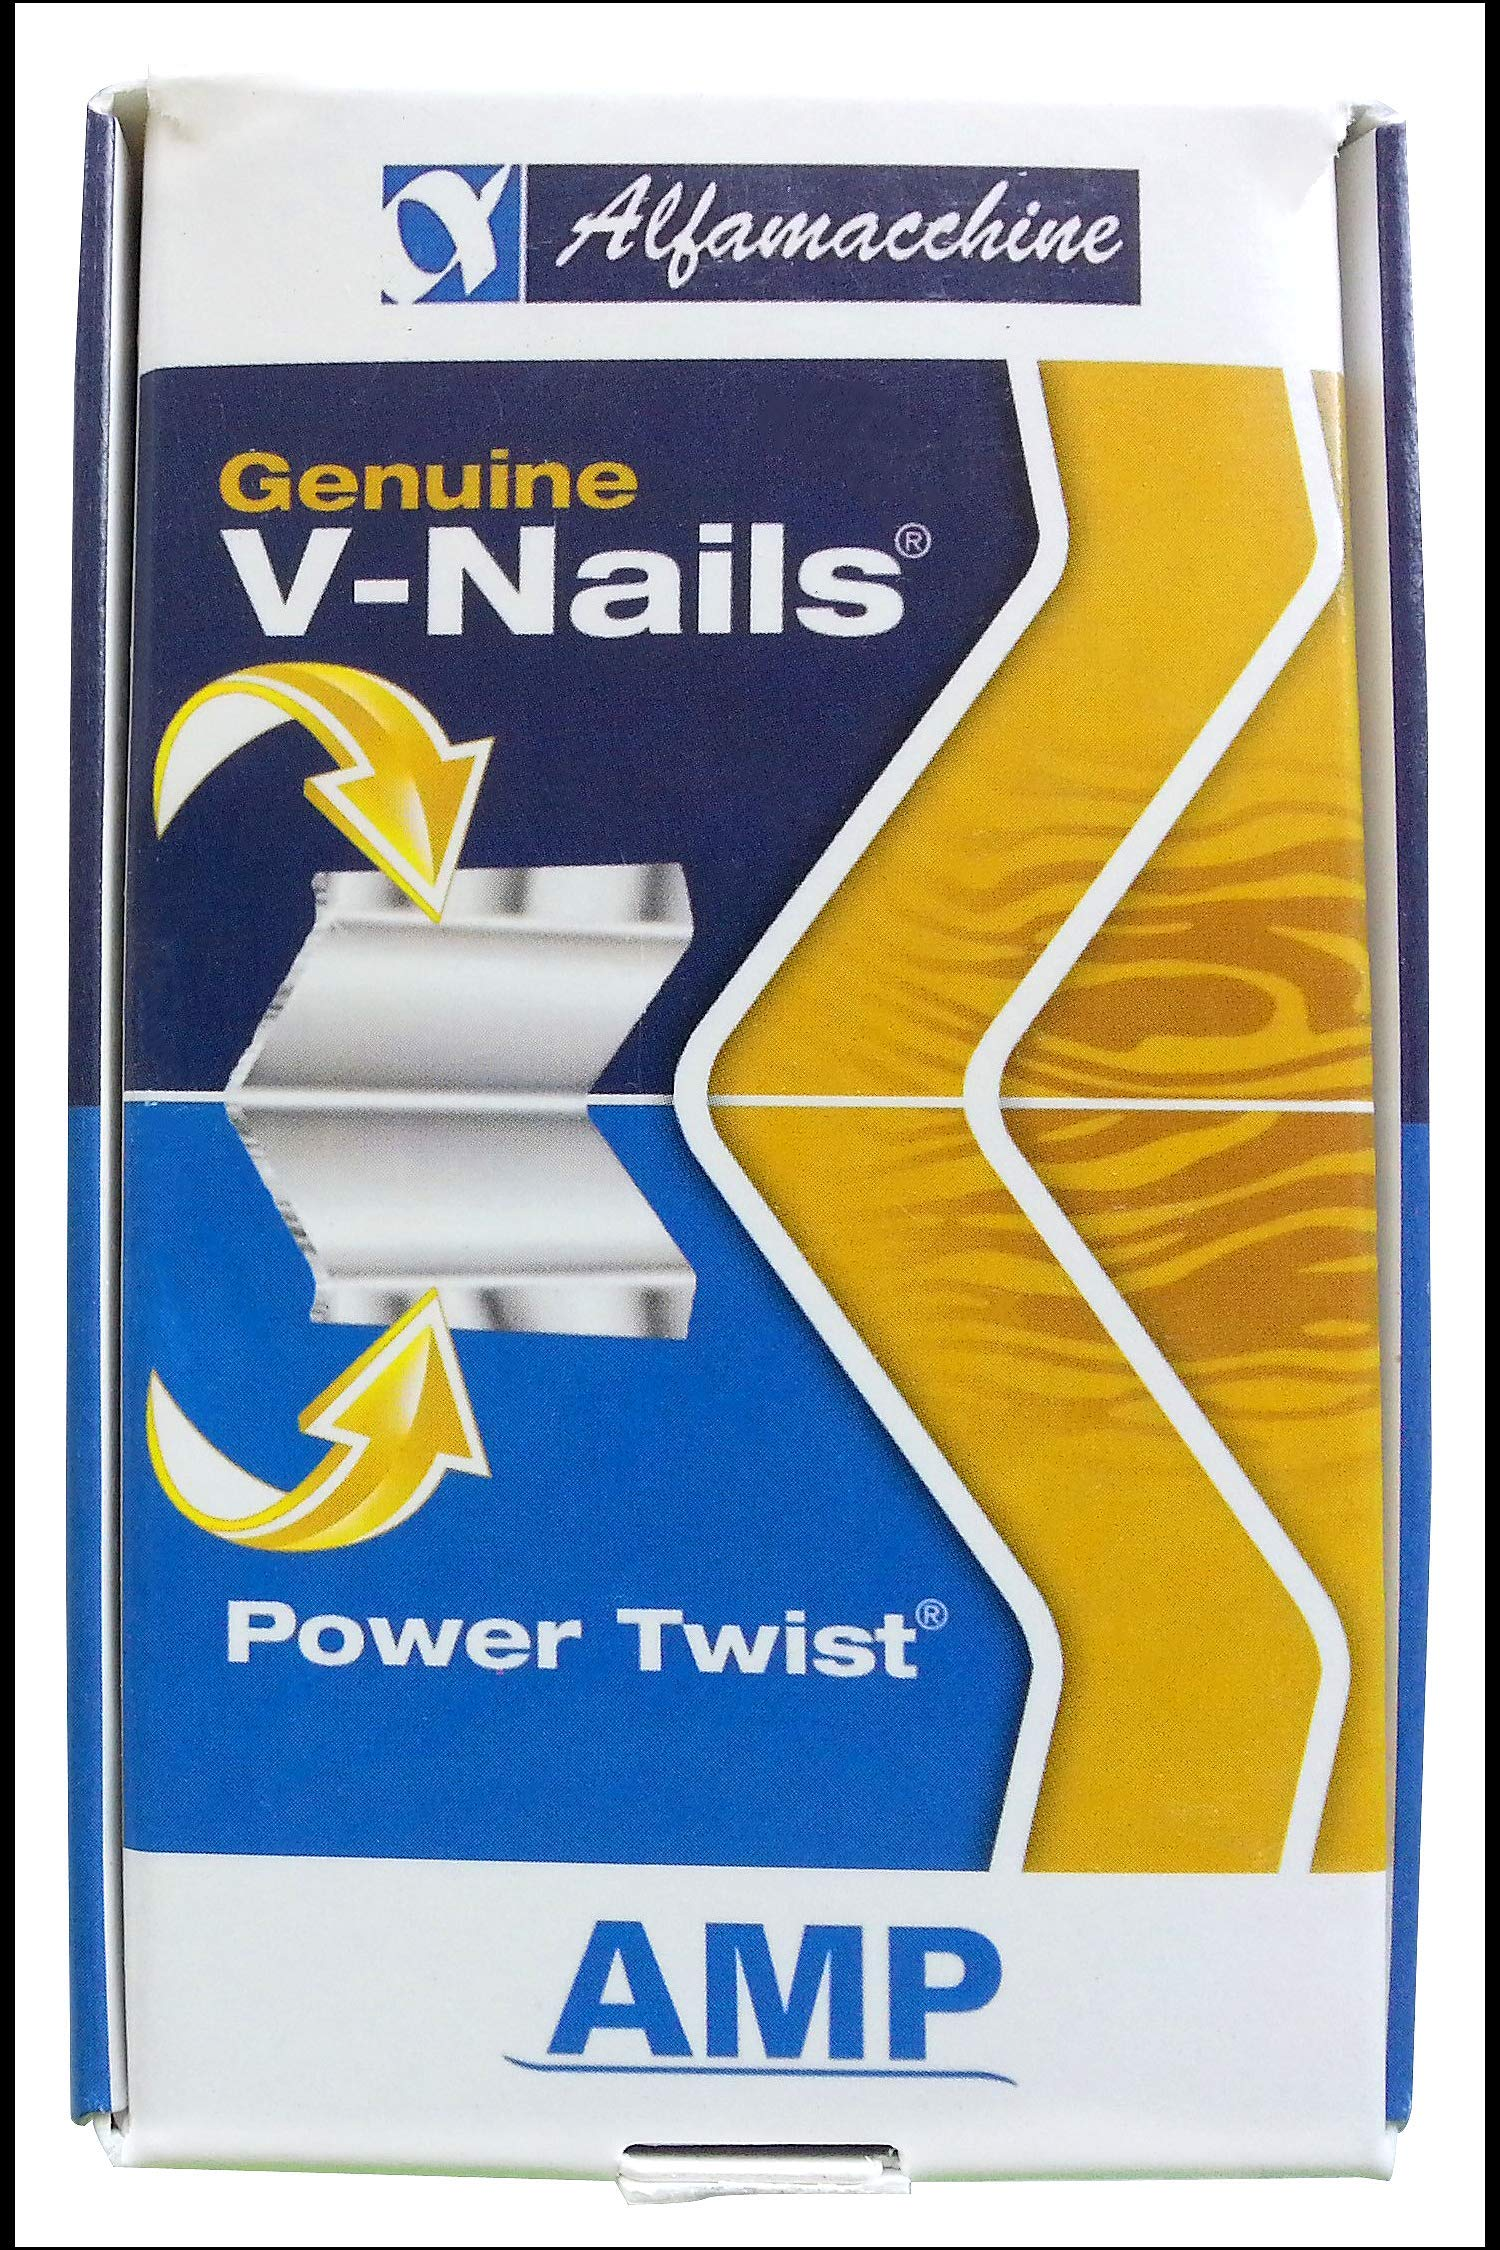 Alfamacchine AMP Genuine Power Twist V-Nail Joint Fasteners, 7mm (1/4'') for MW/HW (Medium to Hardwood) - Pack of 4000